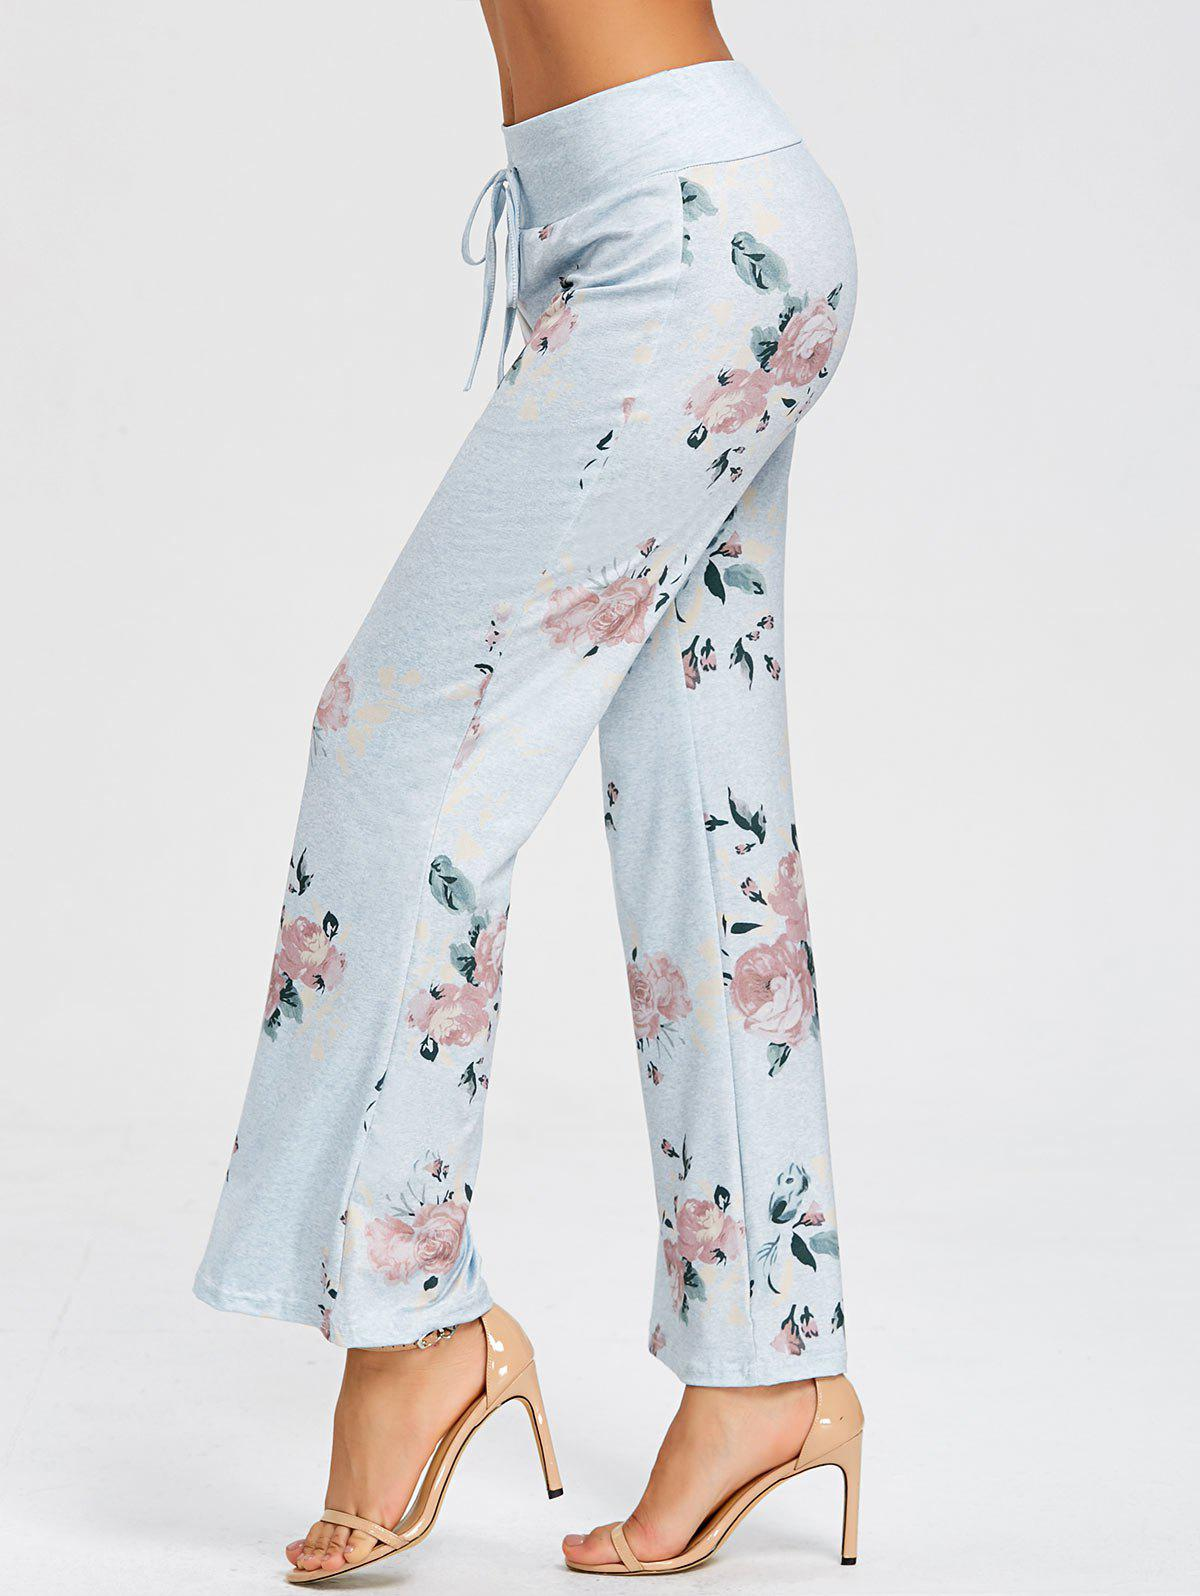 Drawstring Flowers Print Pajama Pants - LIGHT GRAY L